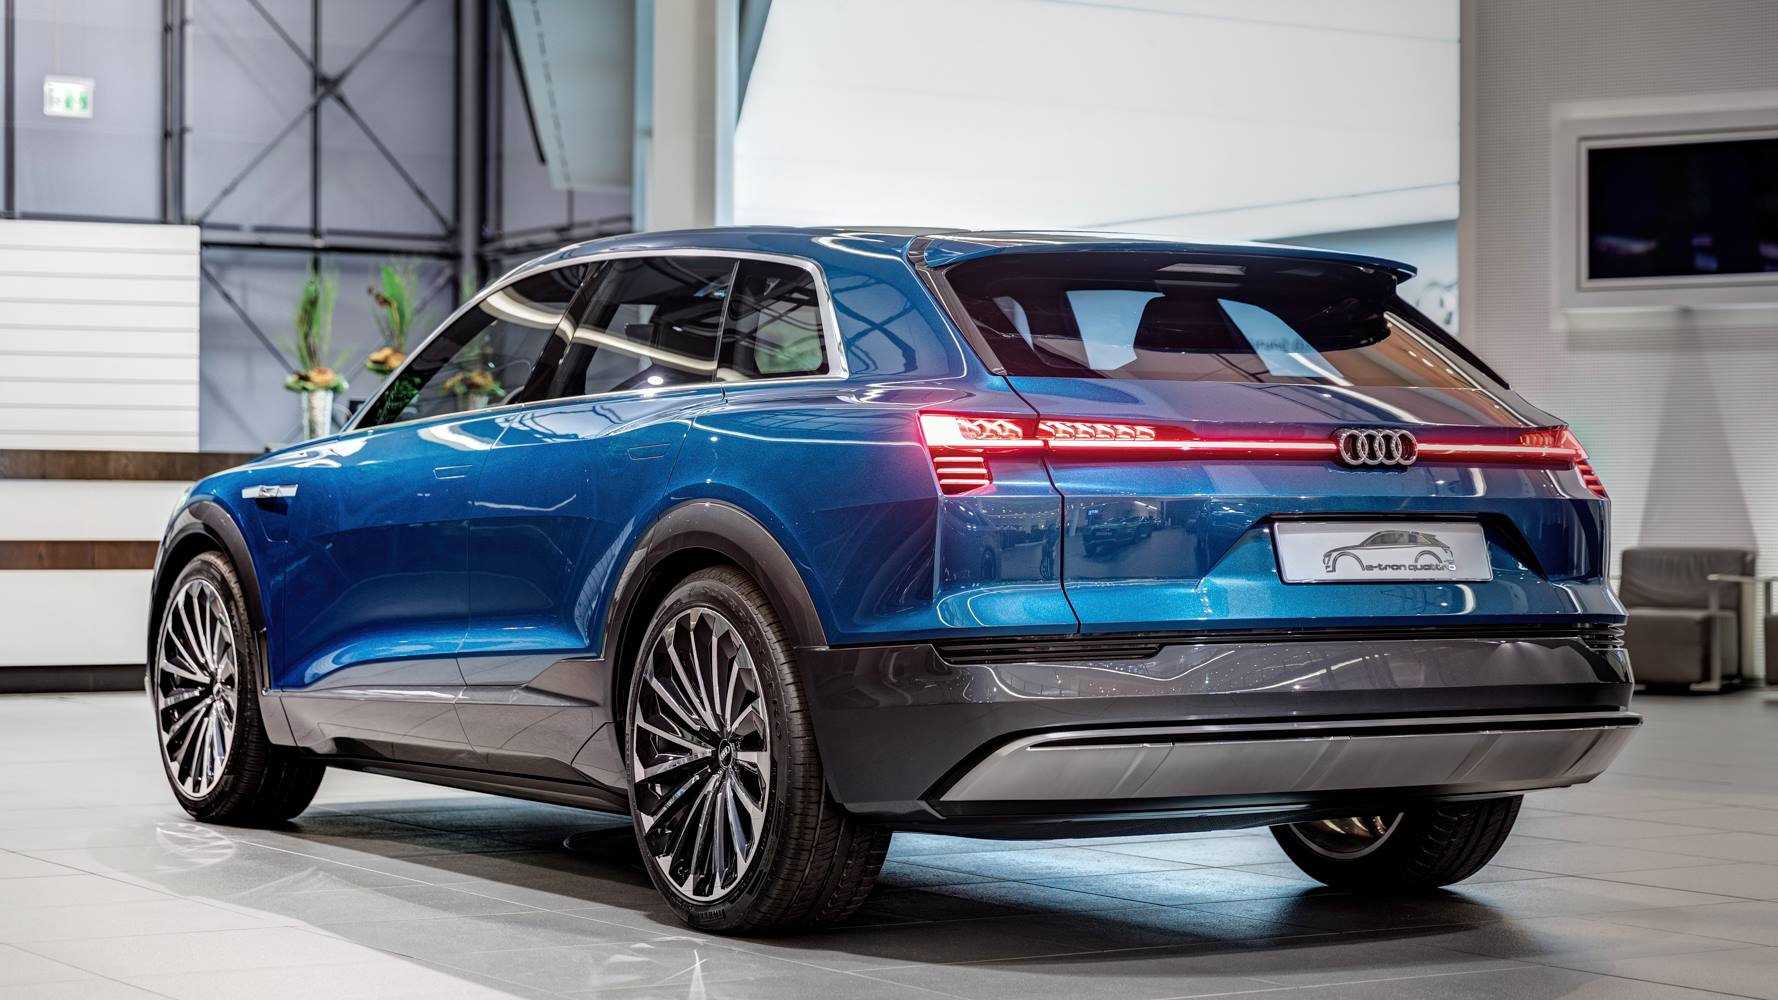 Suv Audi E Tron Quattro Concept Arrives At Forum Neckarsulm